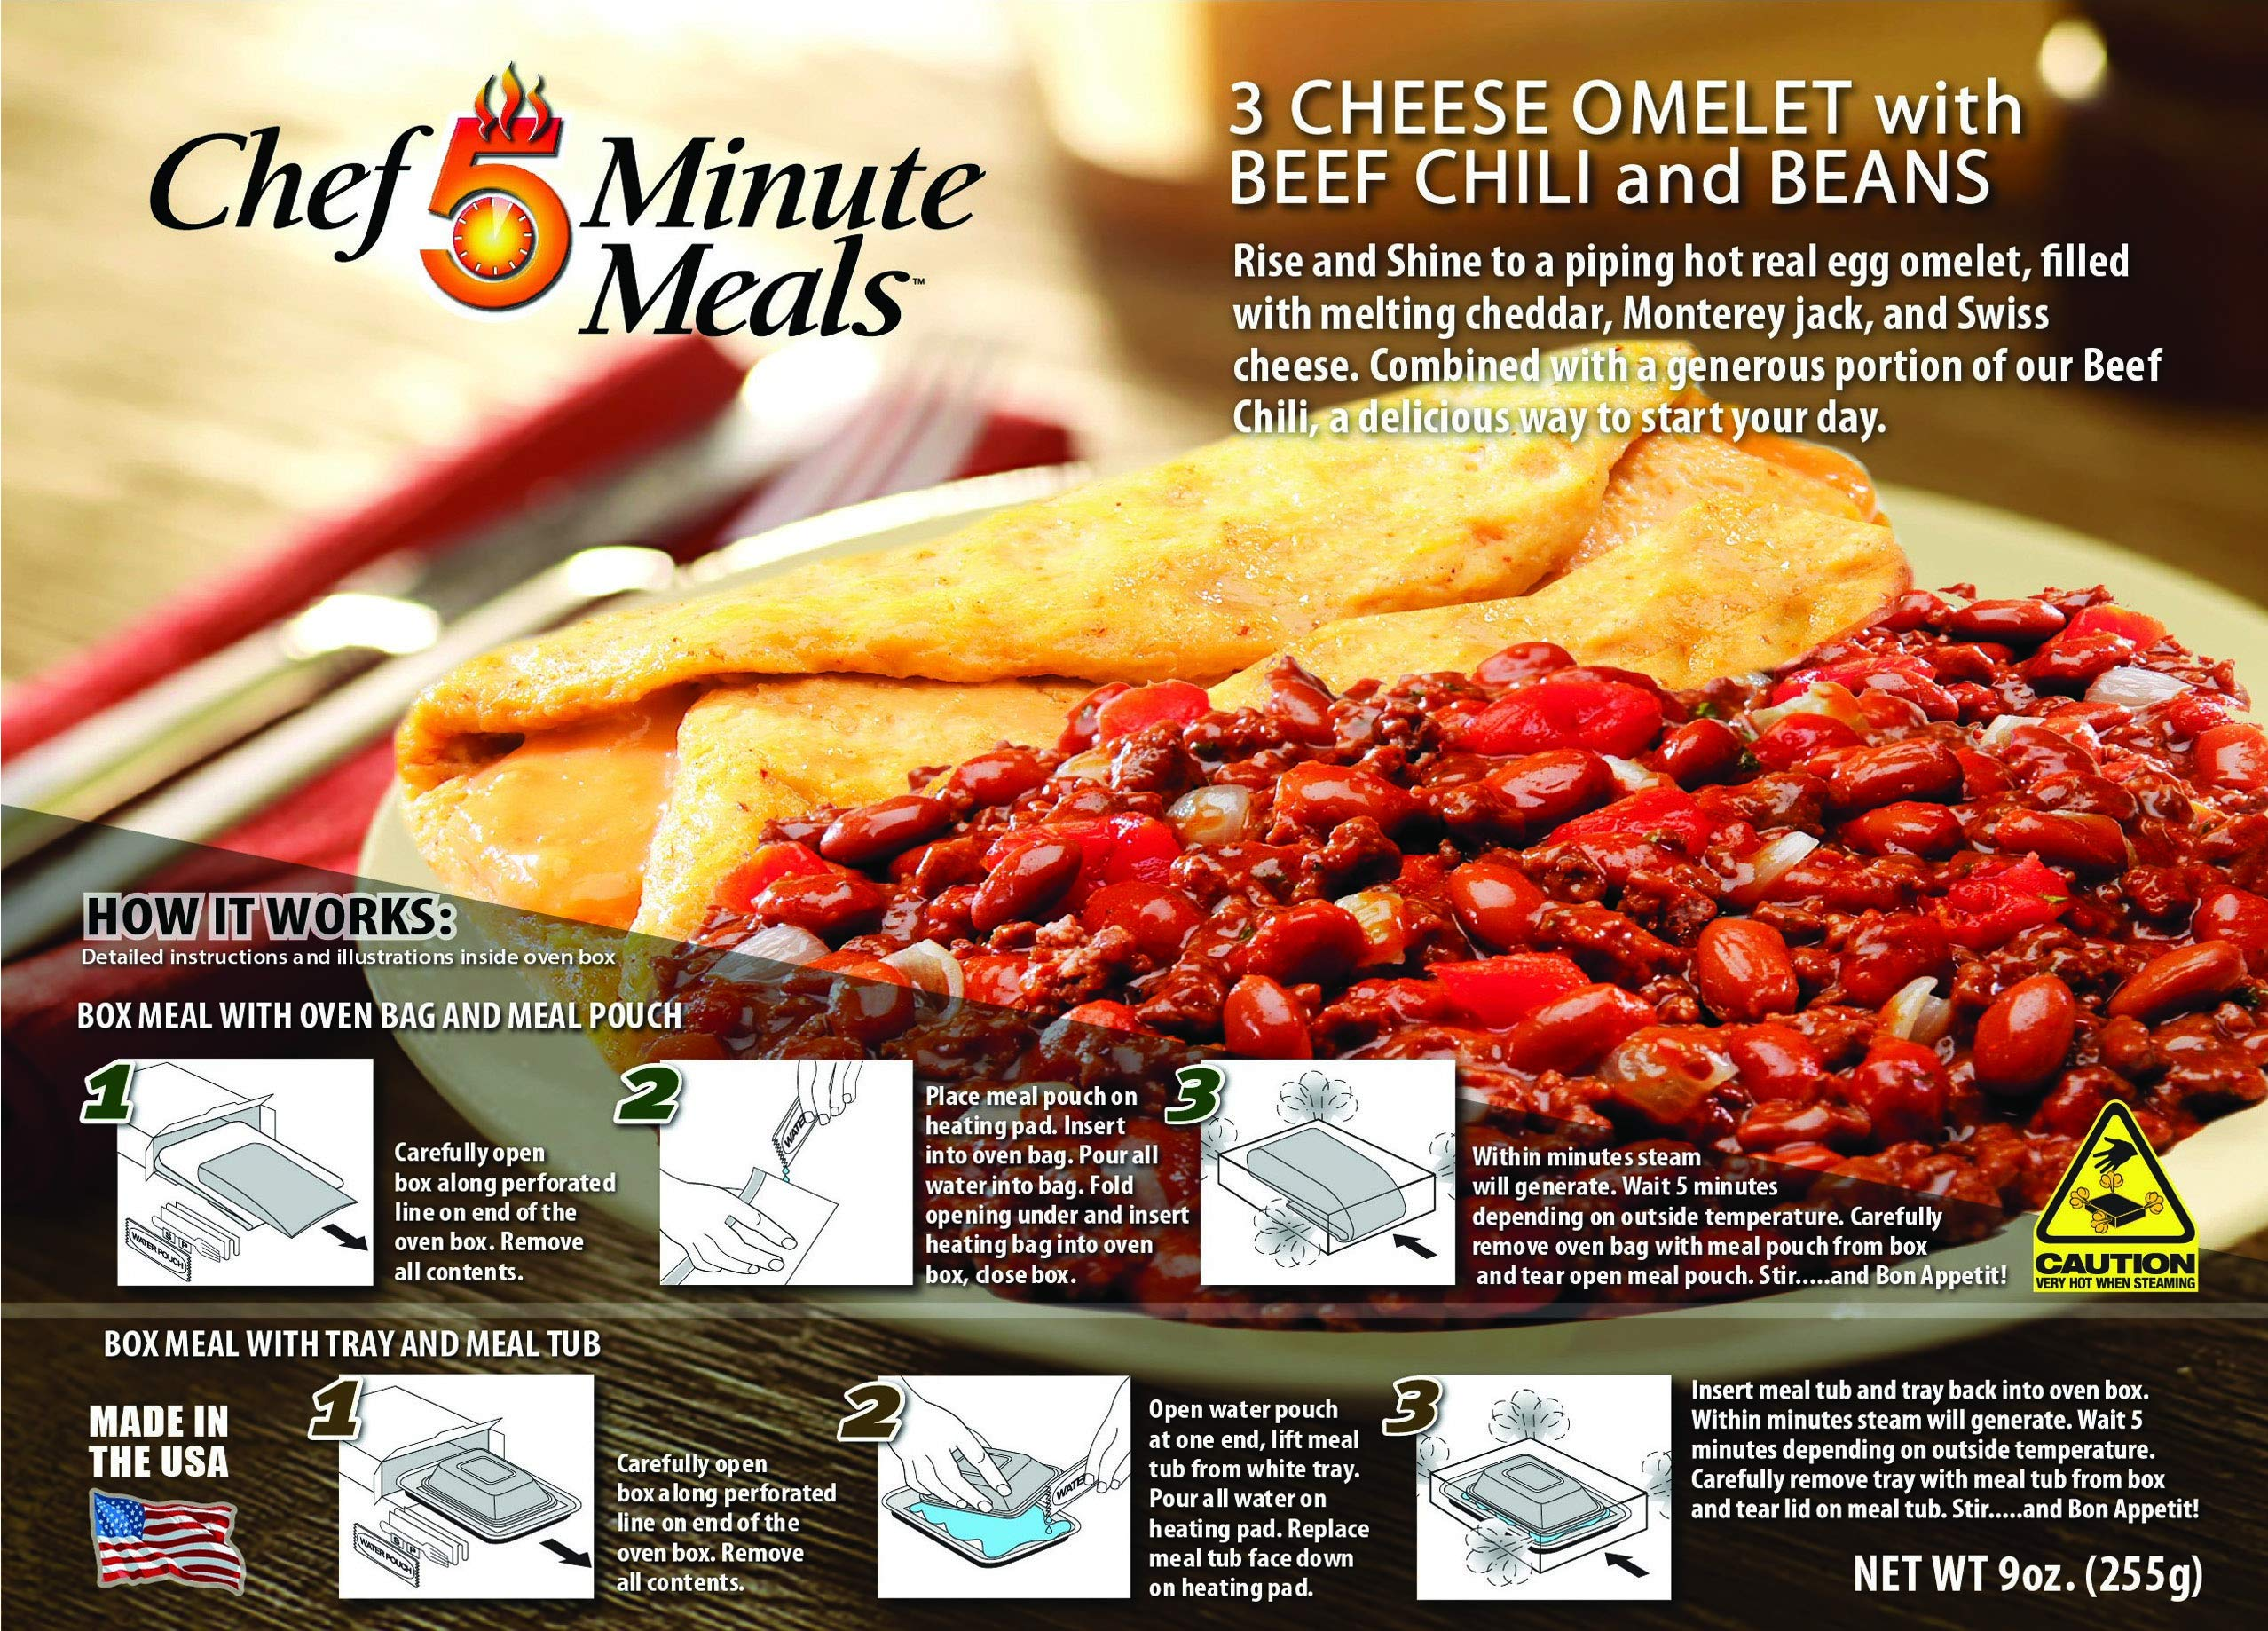 Chef 5 Minute Meals Self Heating Meal Breakfast: 3 Cheese Omelet w/Beef Chili with Beans - Case of 12 by Chef 5 Minute Meals (Image #3)